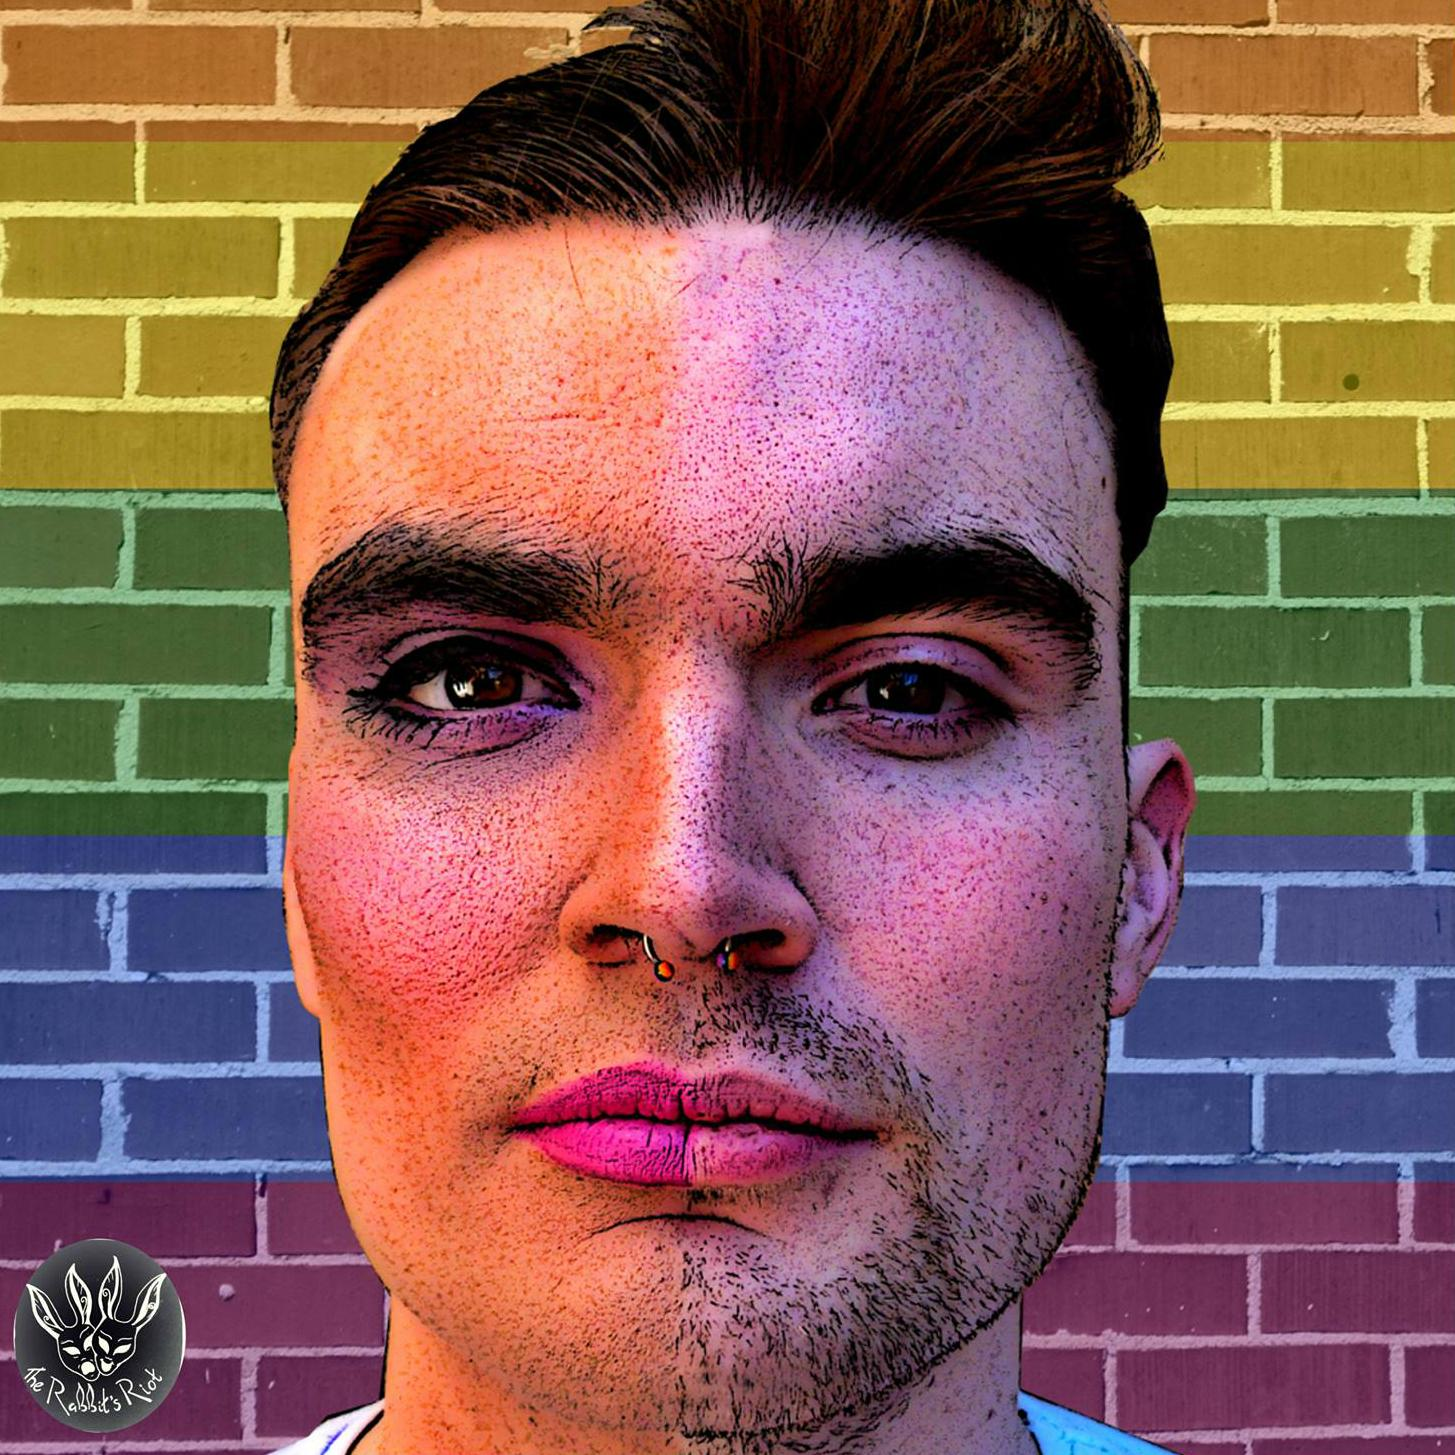 Gay Leitrim, free gay dating, Ireland: Only Lads - free gay